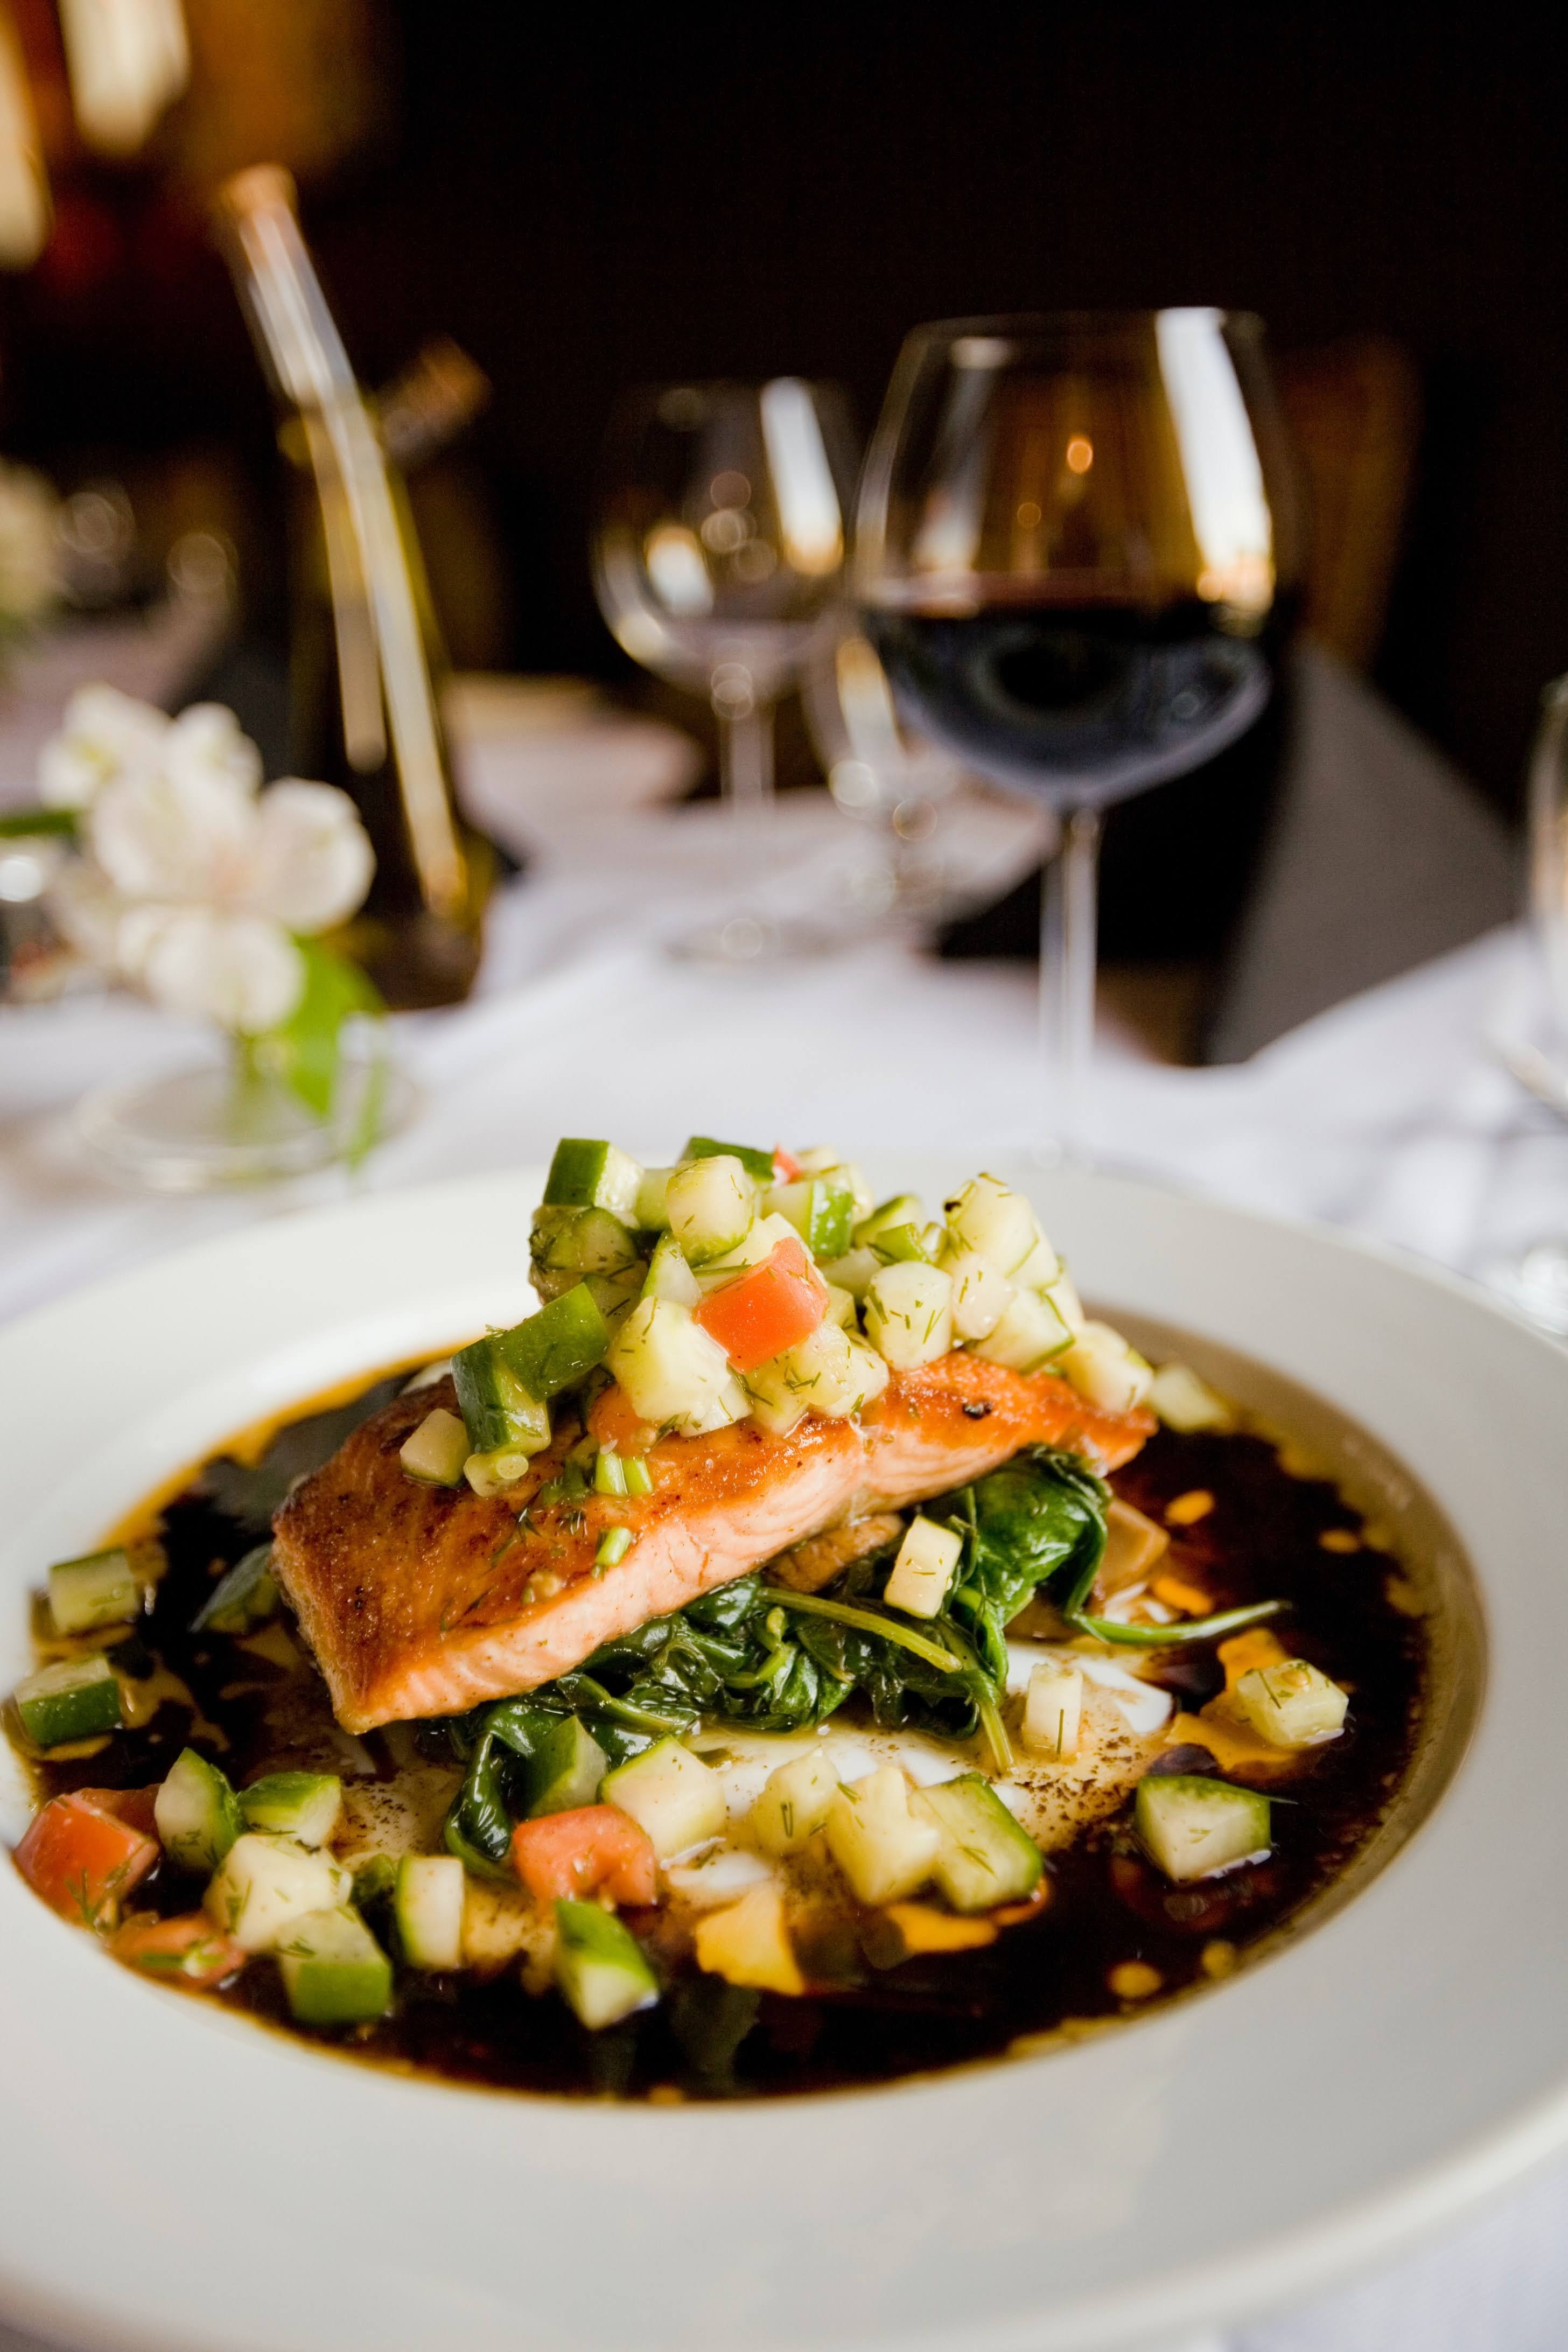 Meal with Salmon and Zucchini   Photo by Casey Lee via Unsplash